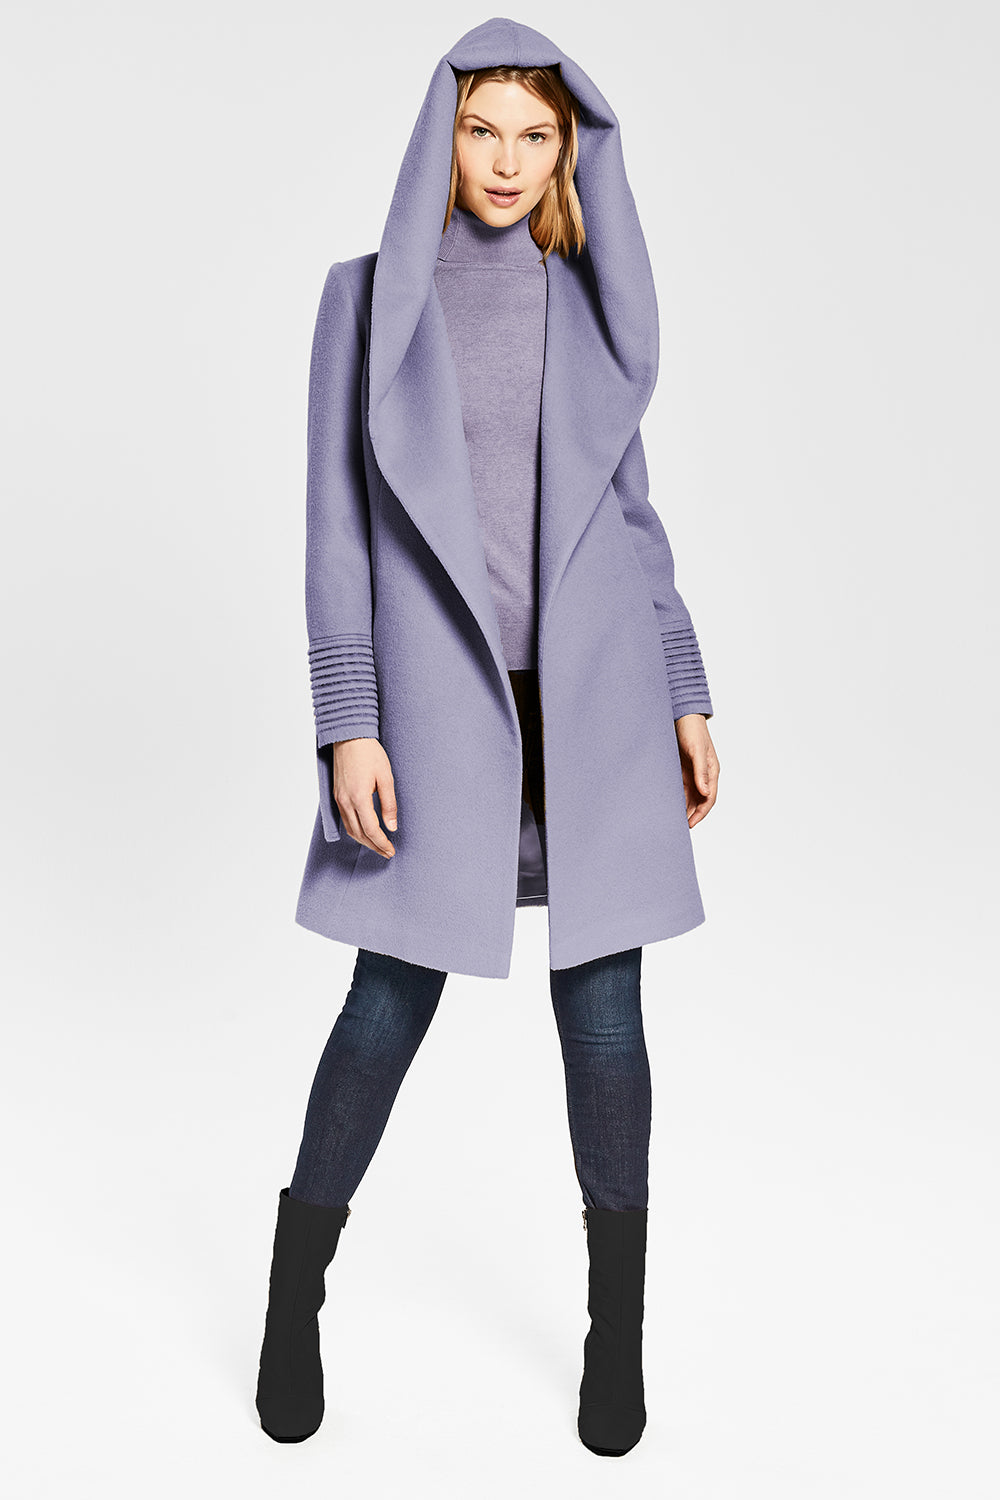 Sentaler Mid Length Hooded Wrap Coat featured in Baby Alpaca and available in Lilac. Seen open.